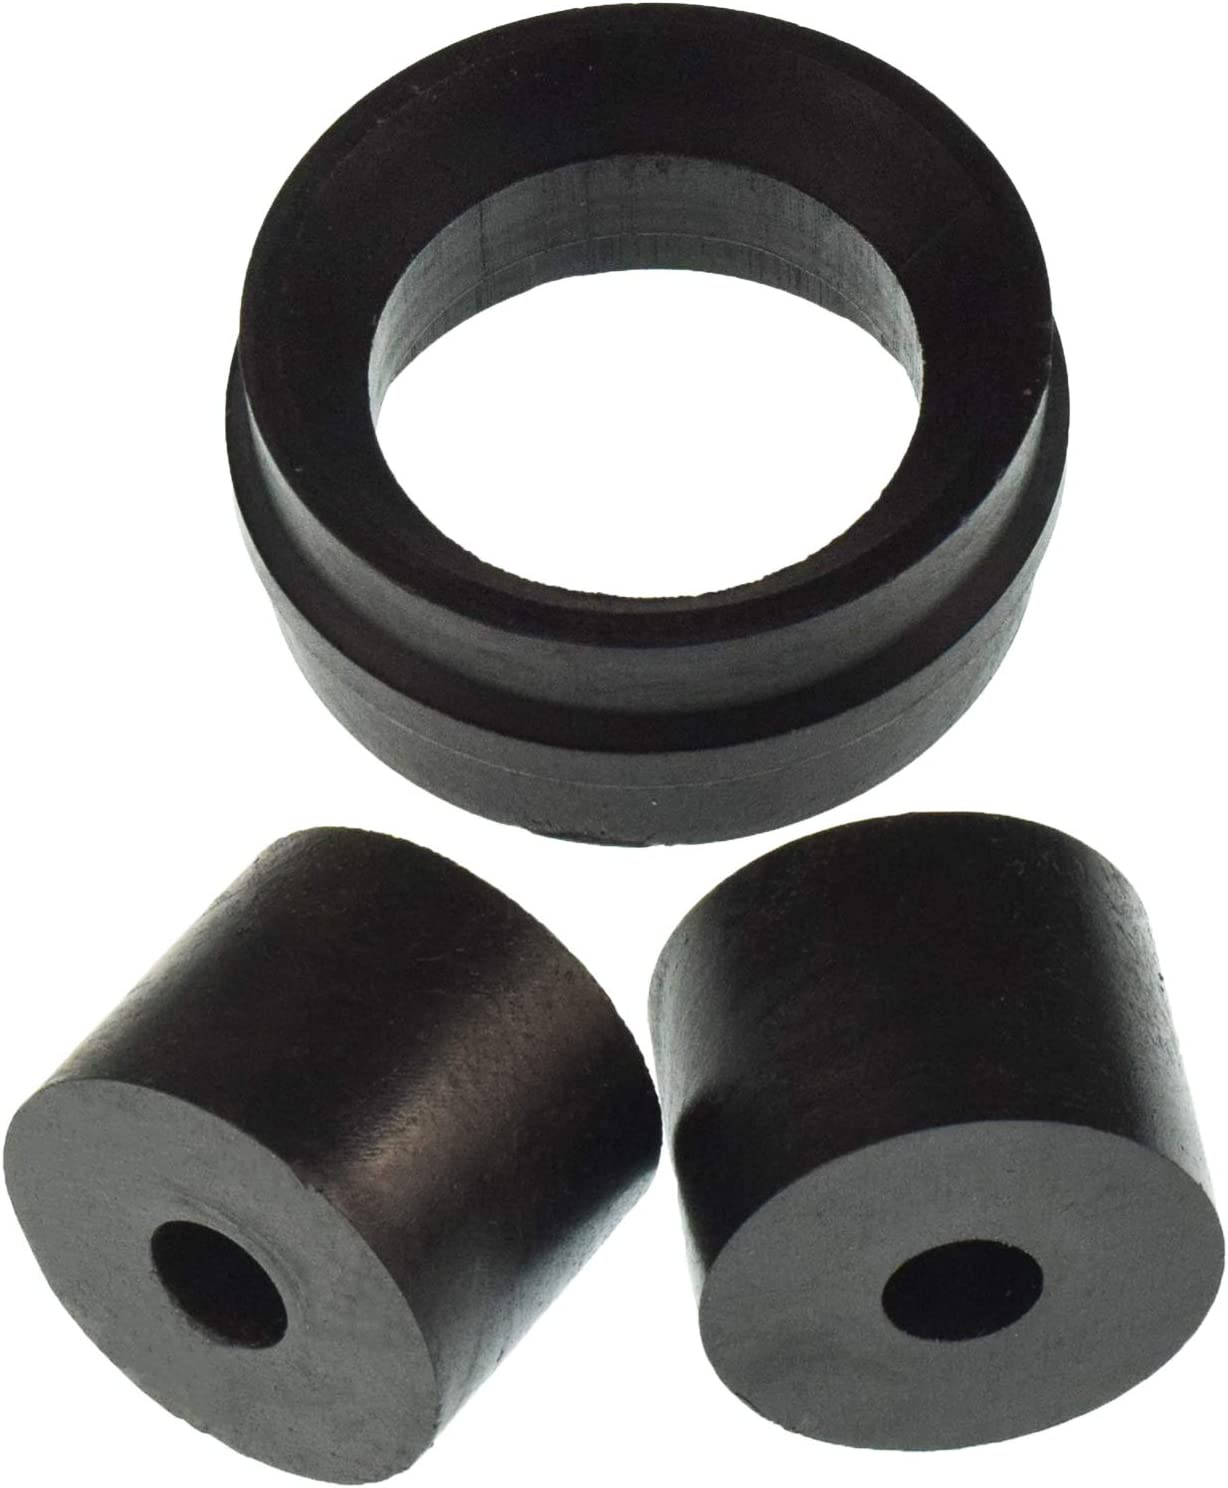 Chain Roller Kit Fits for Yamaha Blaster YFS200 1988-2006 Includes Upper /& Lower Rollers and Swing Arm Guard-Black